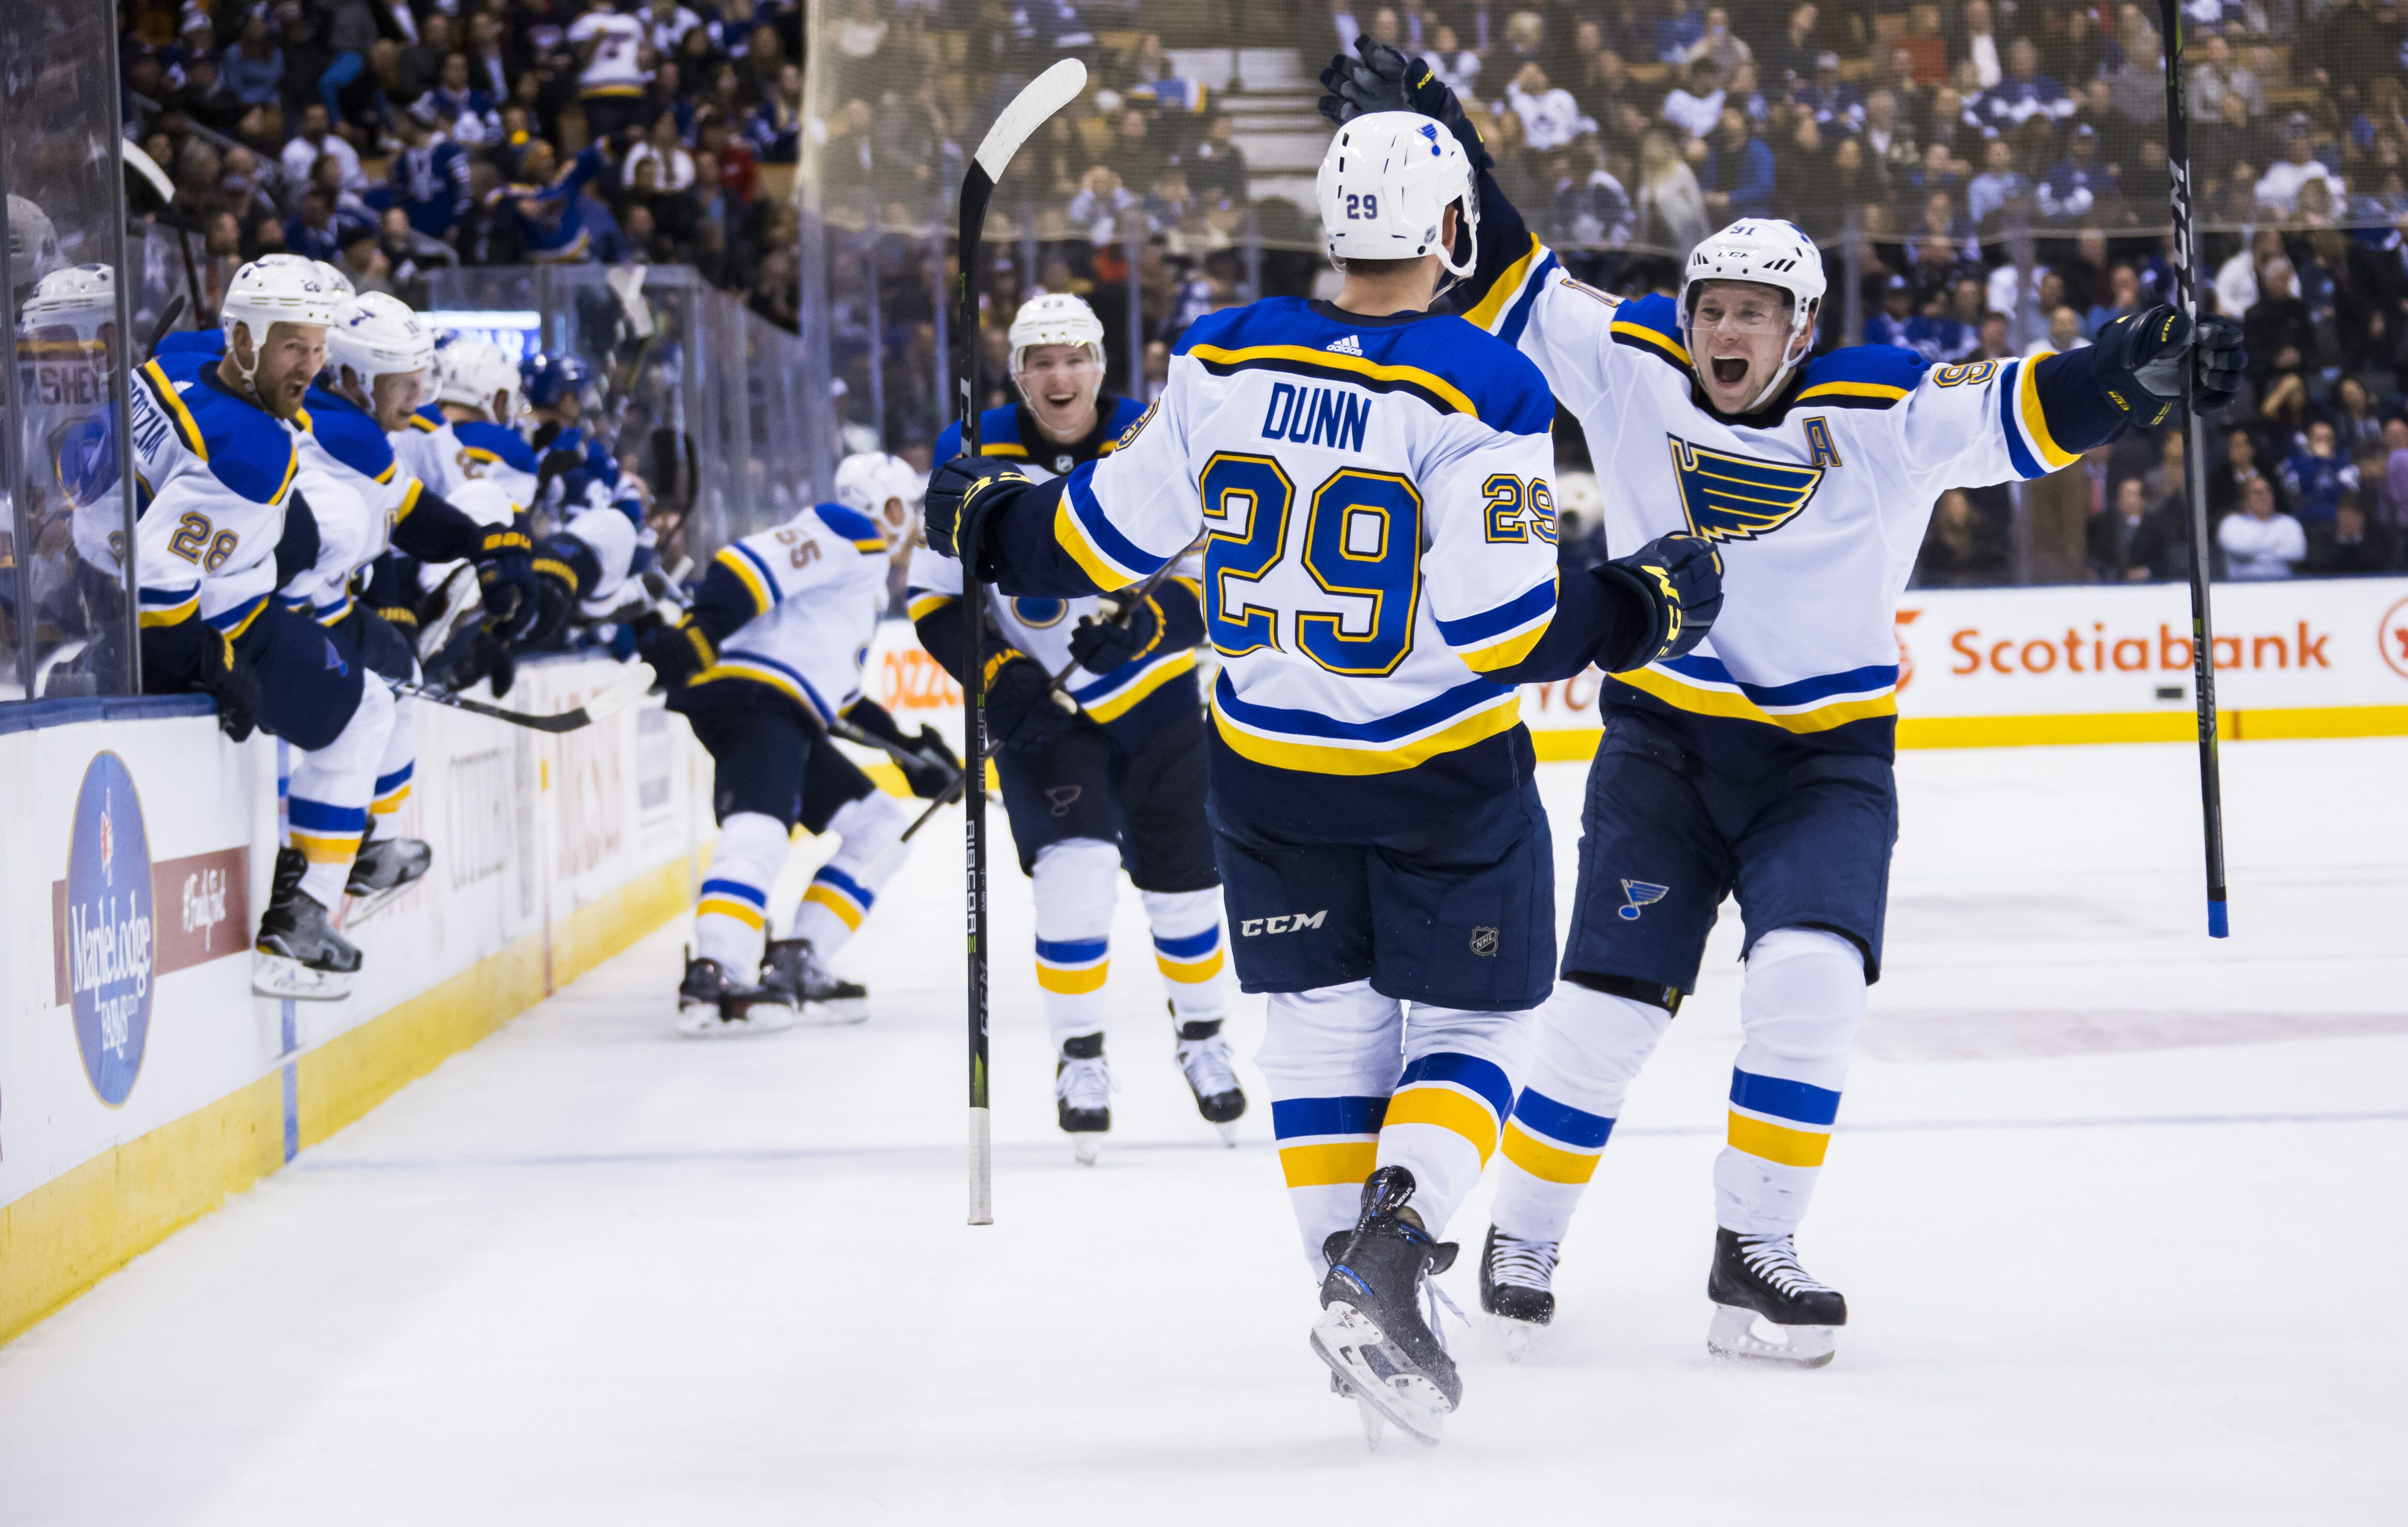 sale retailer e25b7 9787c St. Louis Blues: Vince Dunn's Name Should Be Inked On Roster ...